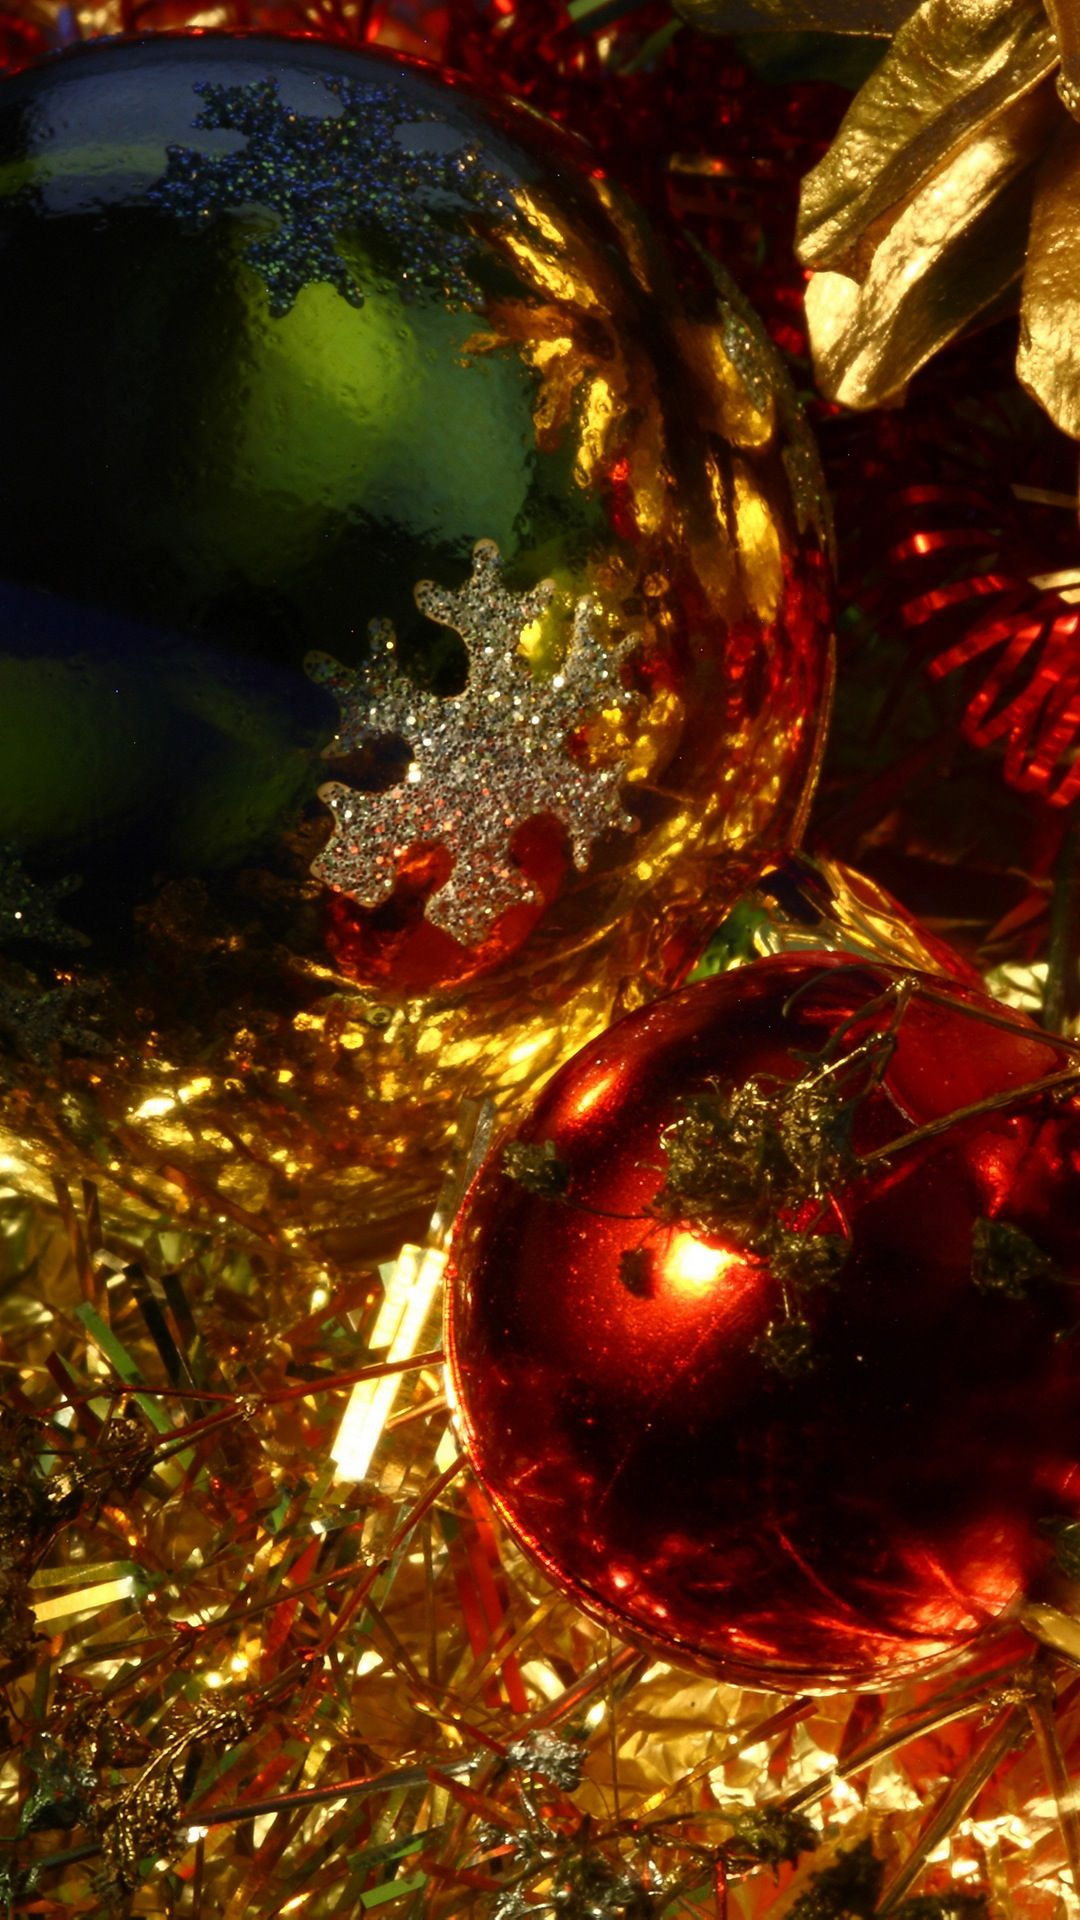 Samsung Galaxy Wallpaper Christmas Wallpapers for